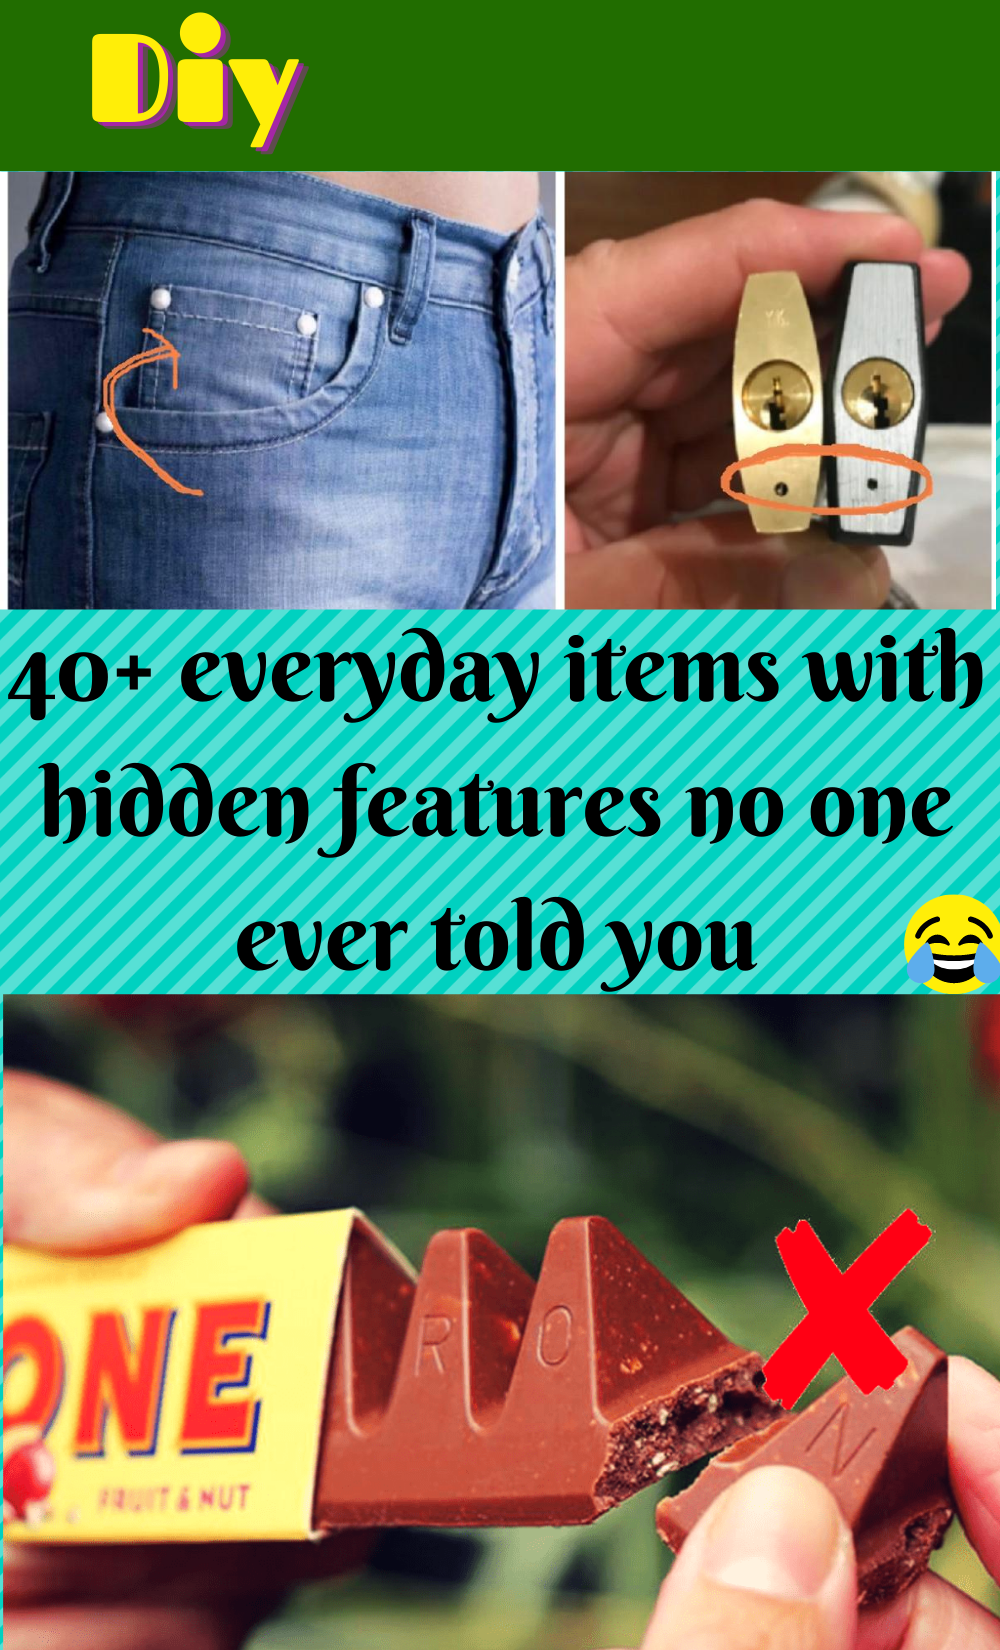 40+ everyday items with hidden features no one ever told you